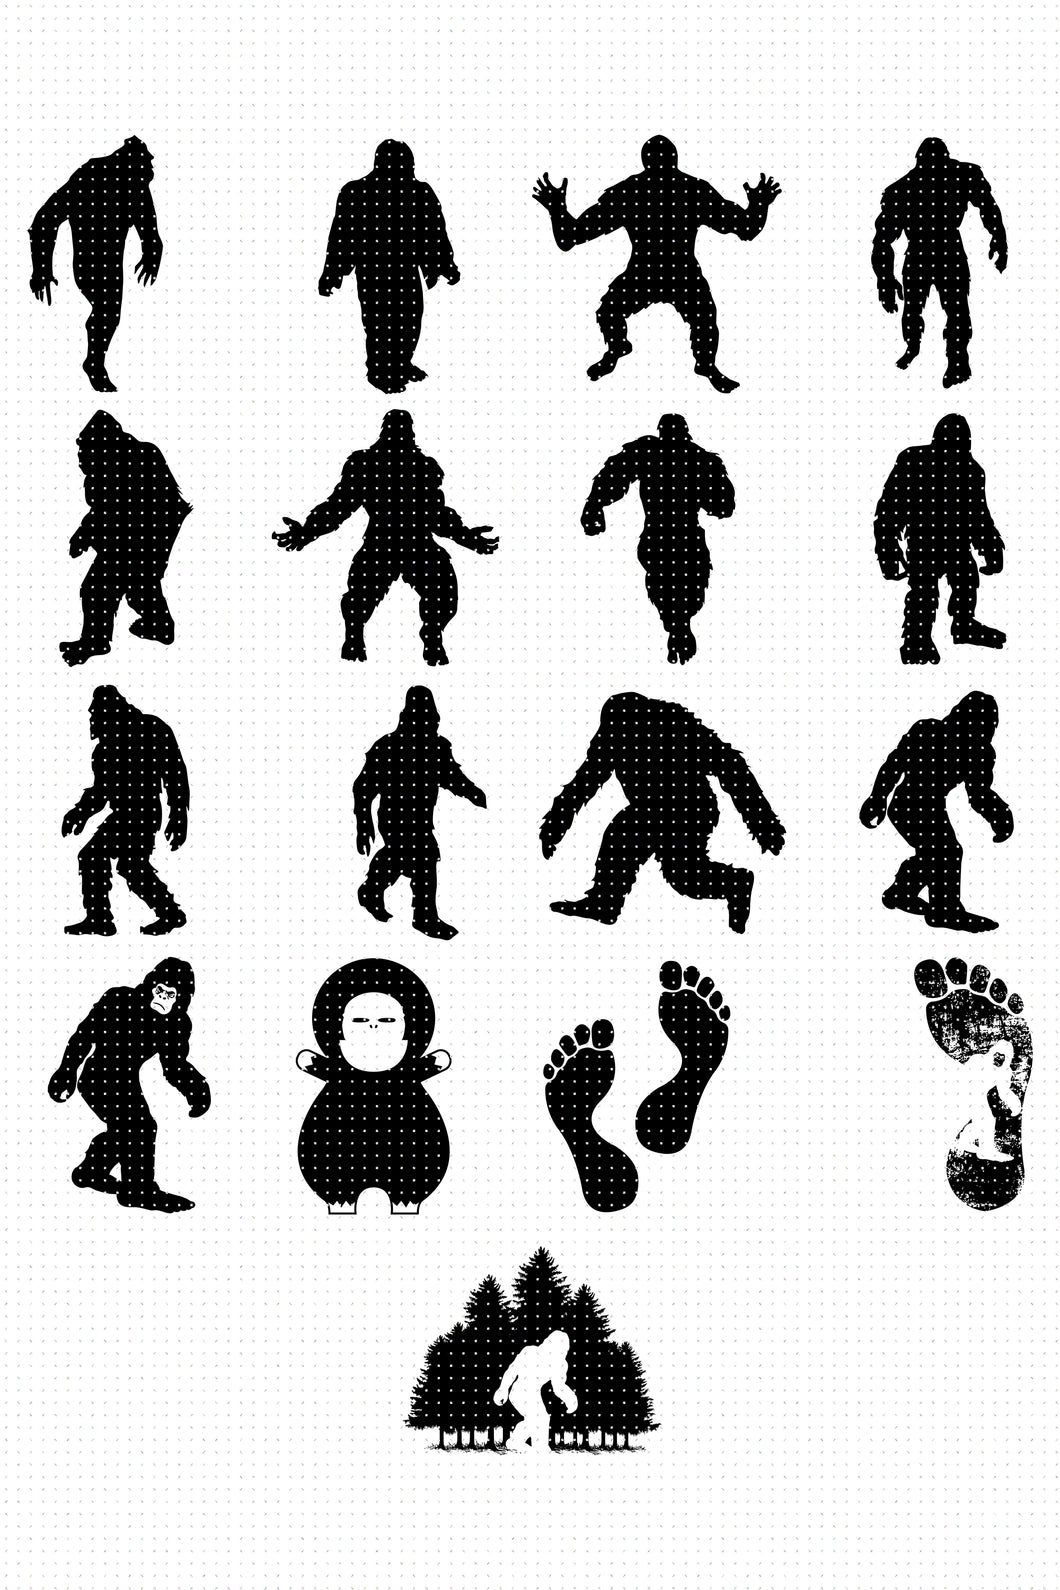 bigfoot SVG, PNG, DXF, clipart, EPS, vector cut file instant download